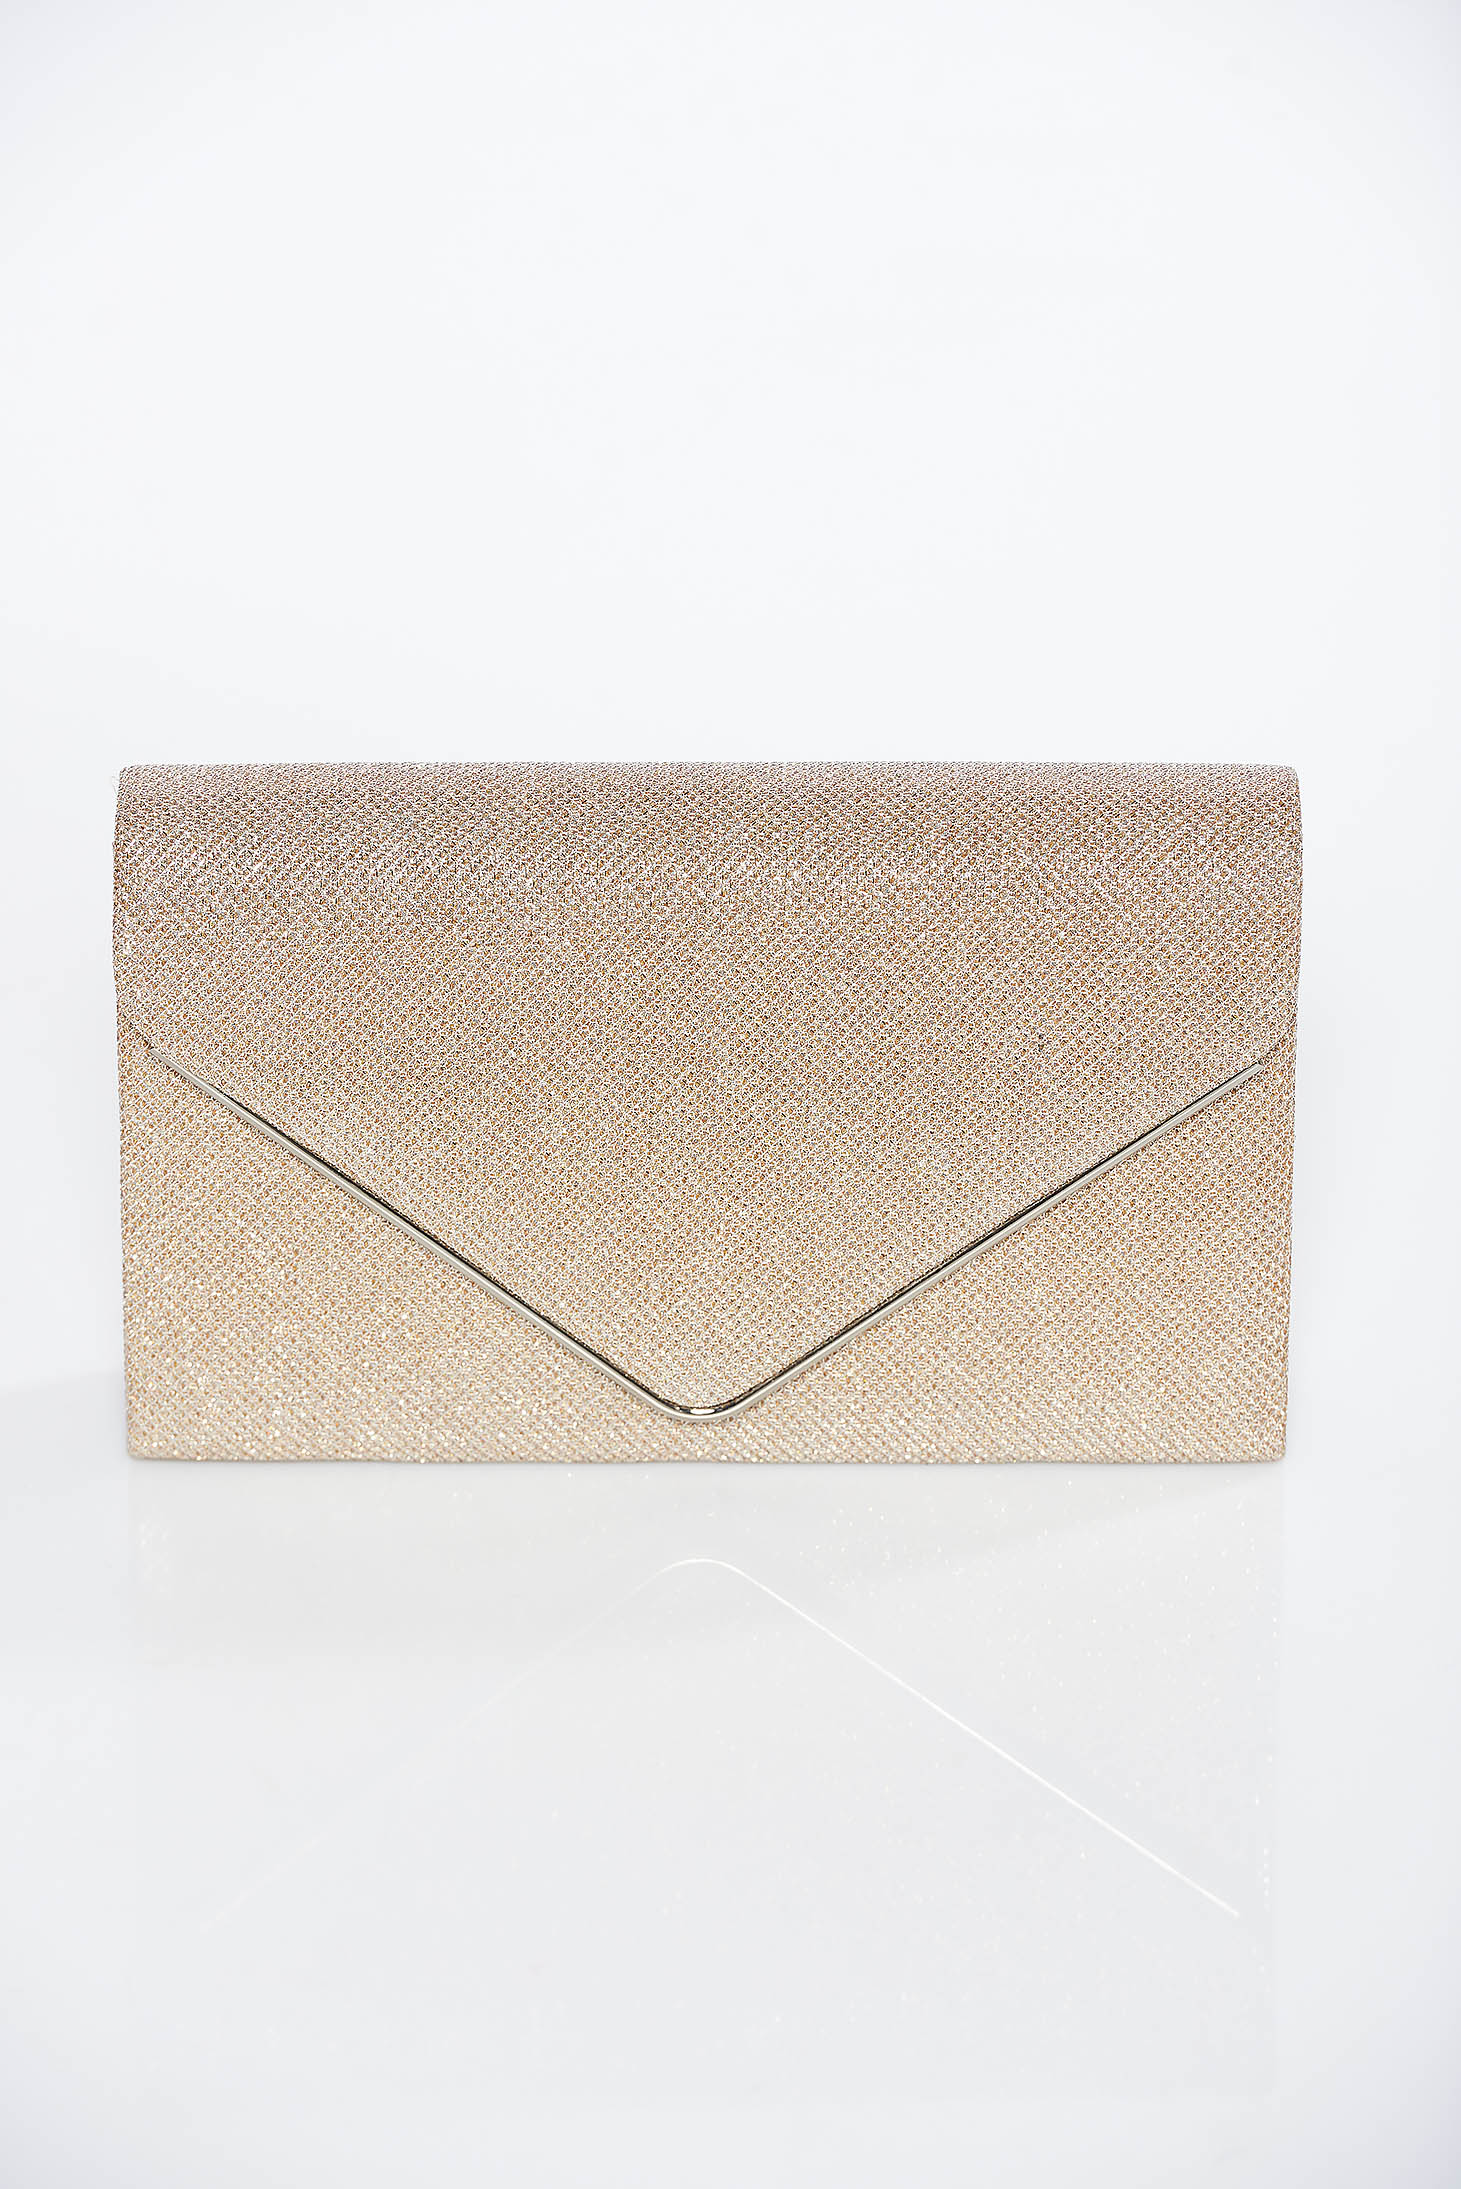 Gold occasional bag clutch shimmery metallic fabric